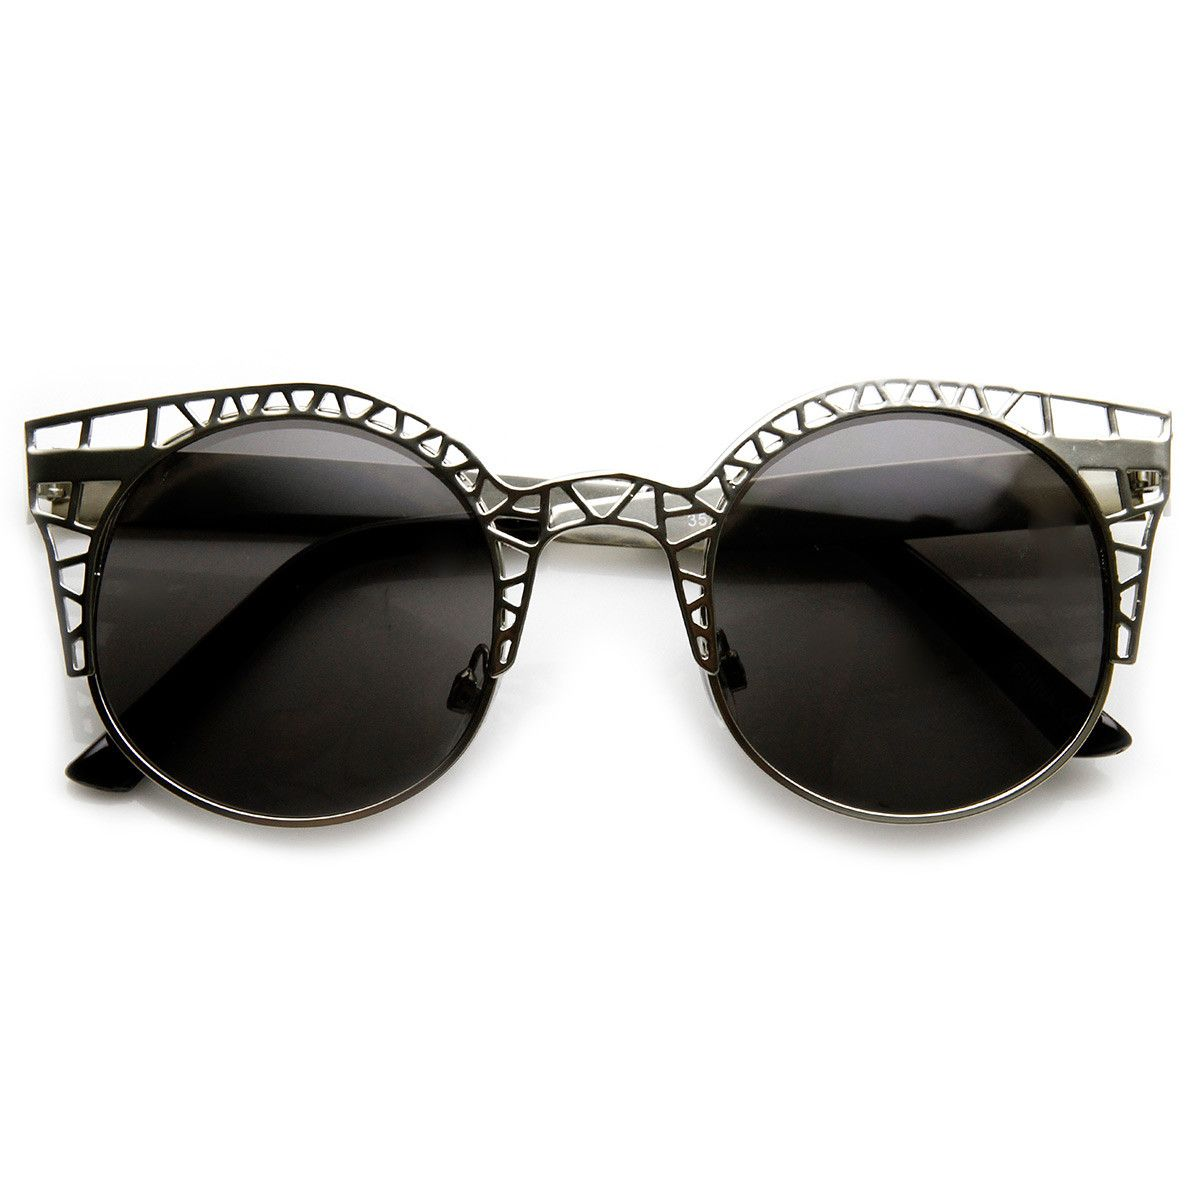 be77a15012a8 Unique designer inspired metal frames in geometric laser cut design. Theses  unique sunnies are taken from fantastic to fabulous thanks to plenty of  cutouts ...